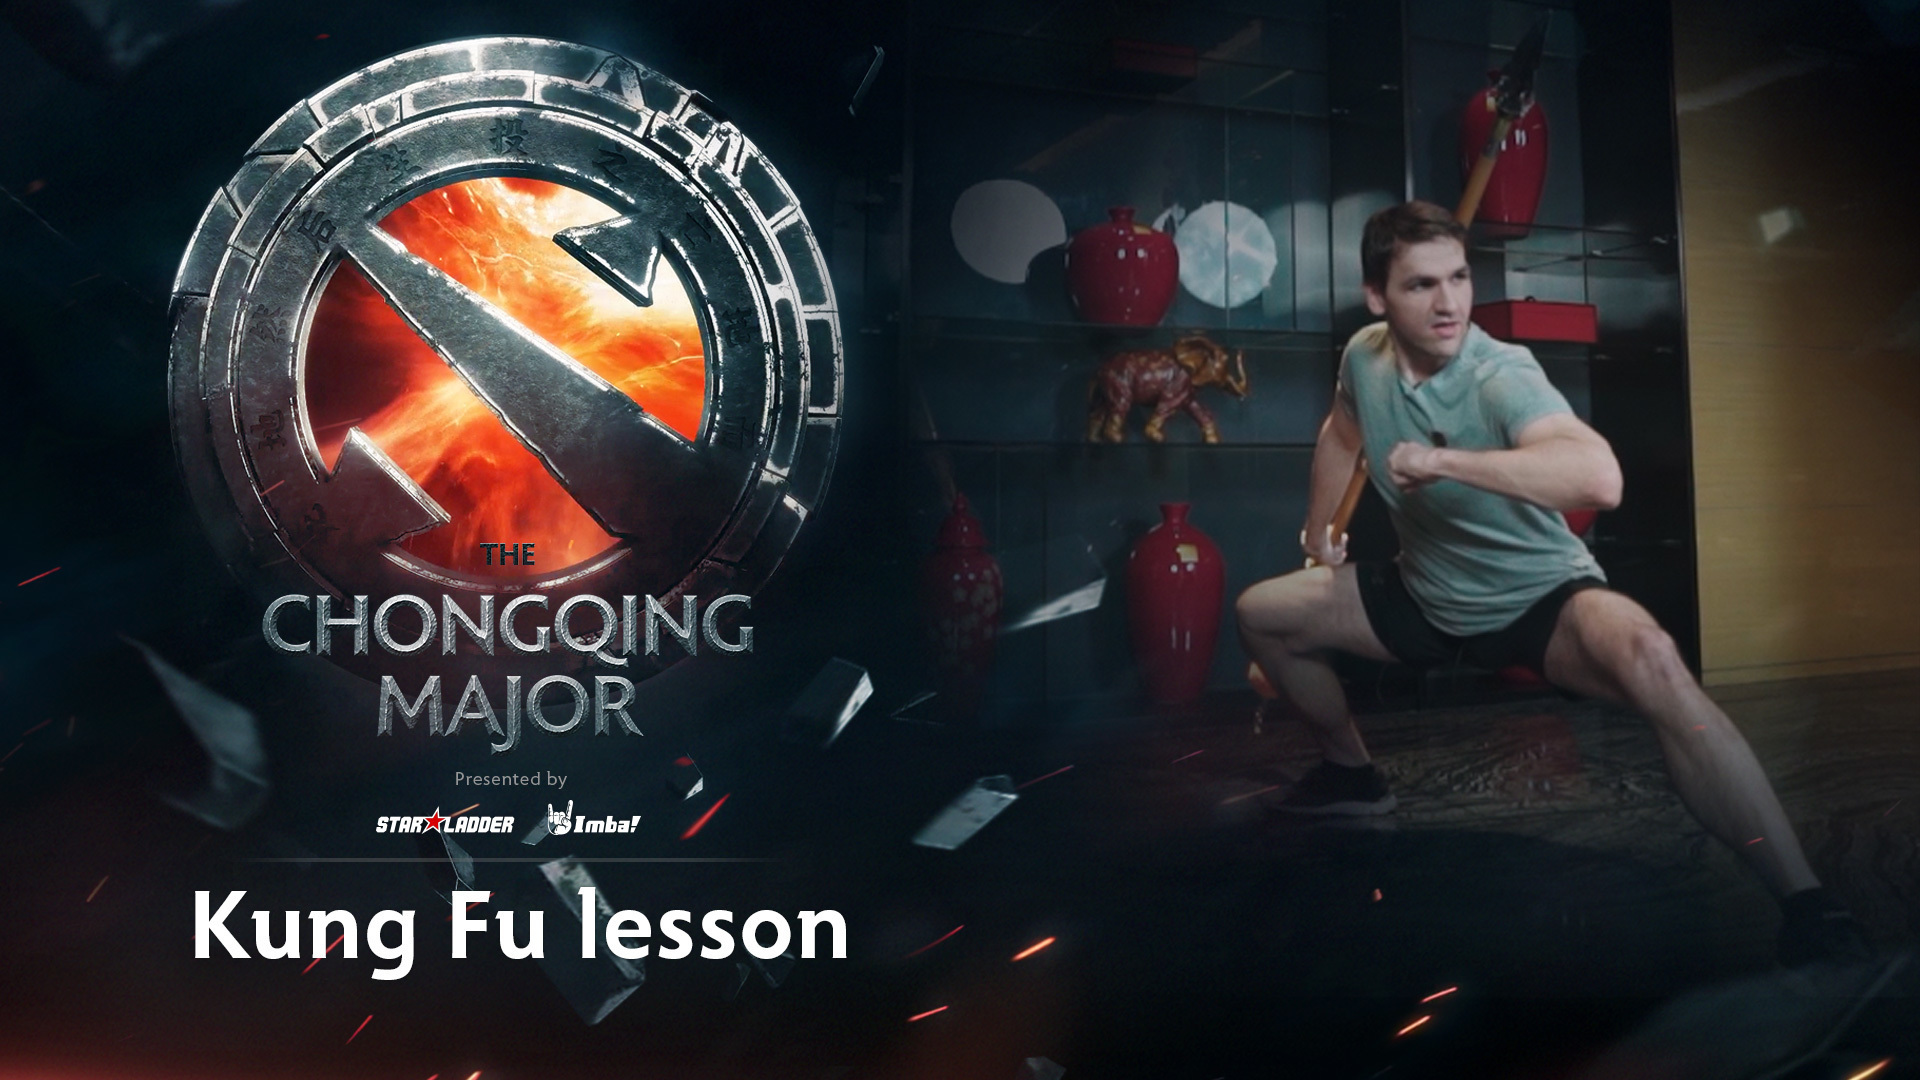 The Chongqing Major: Kung Fu lesson